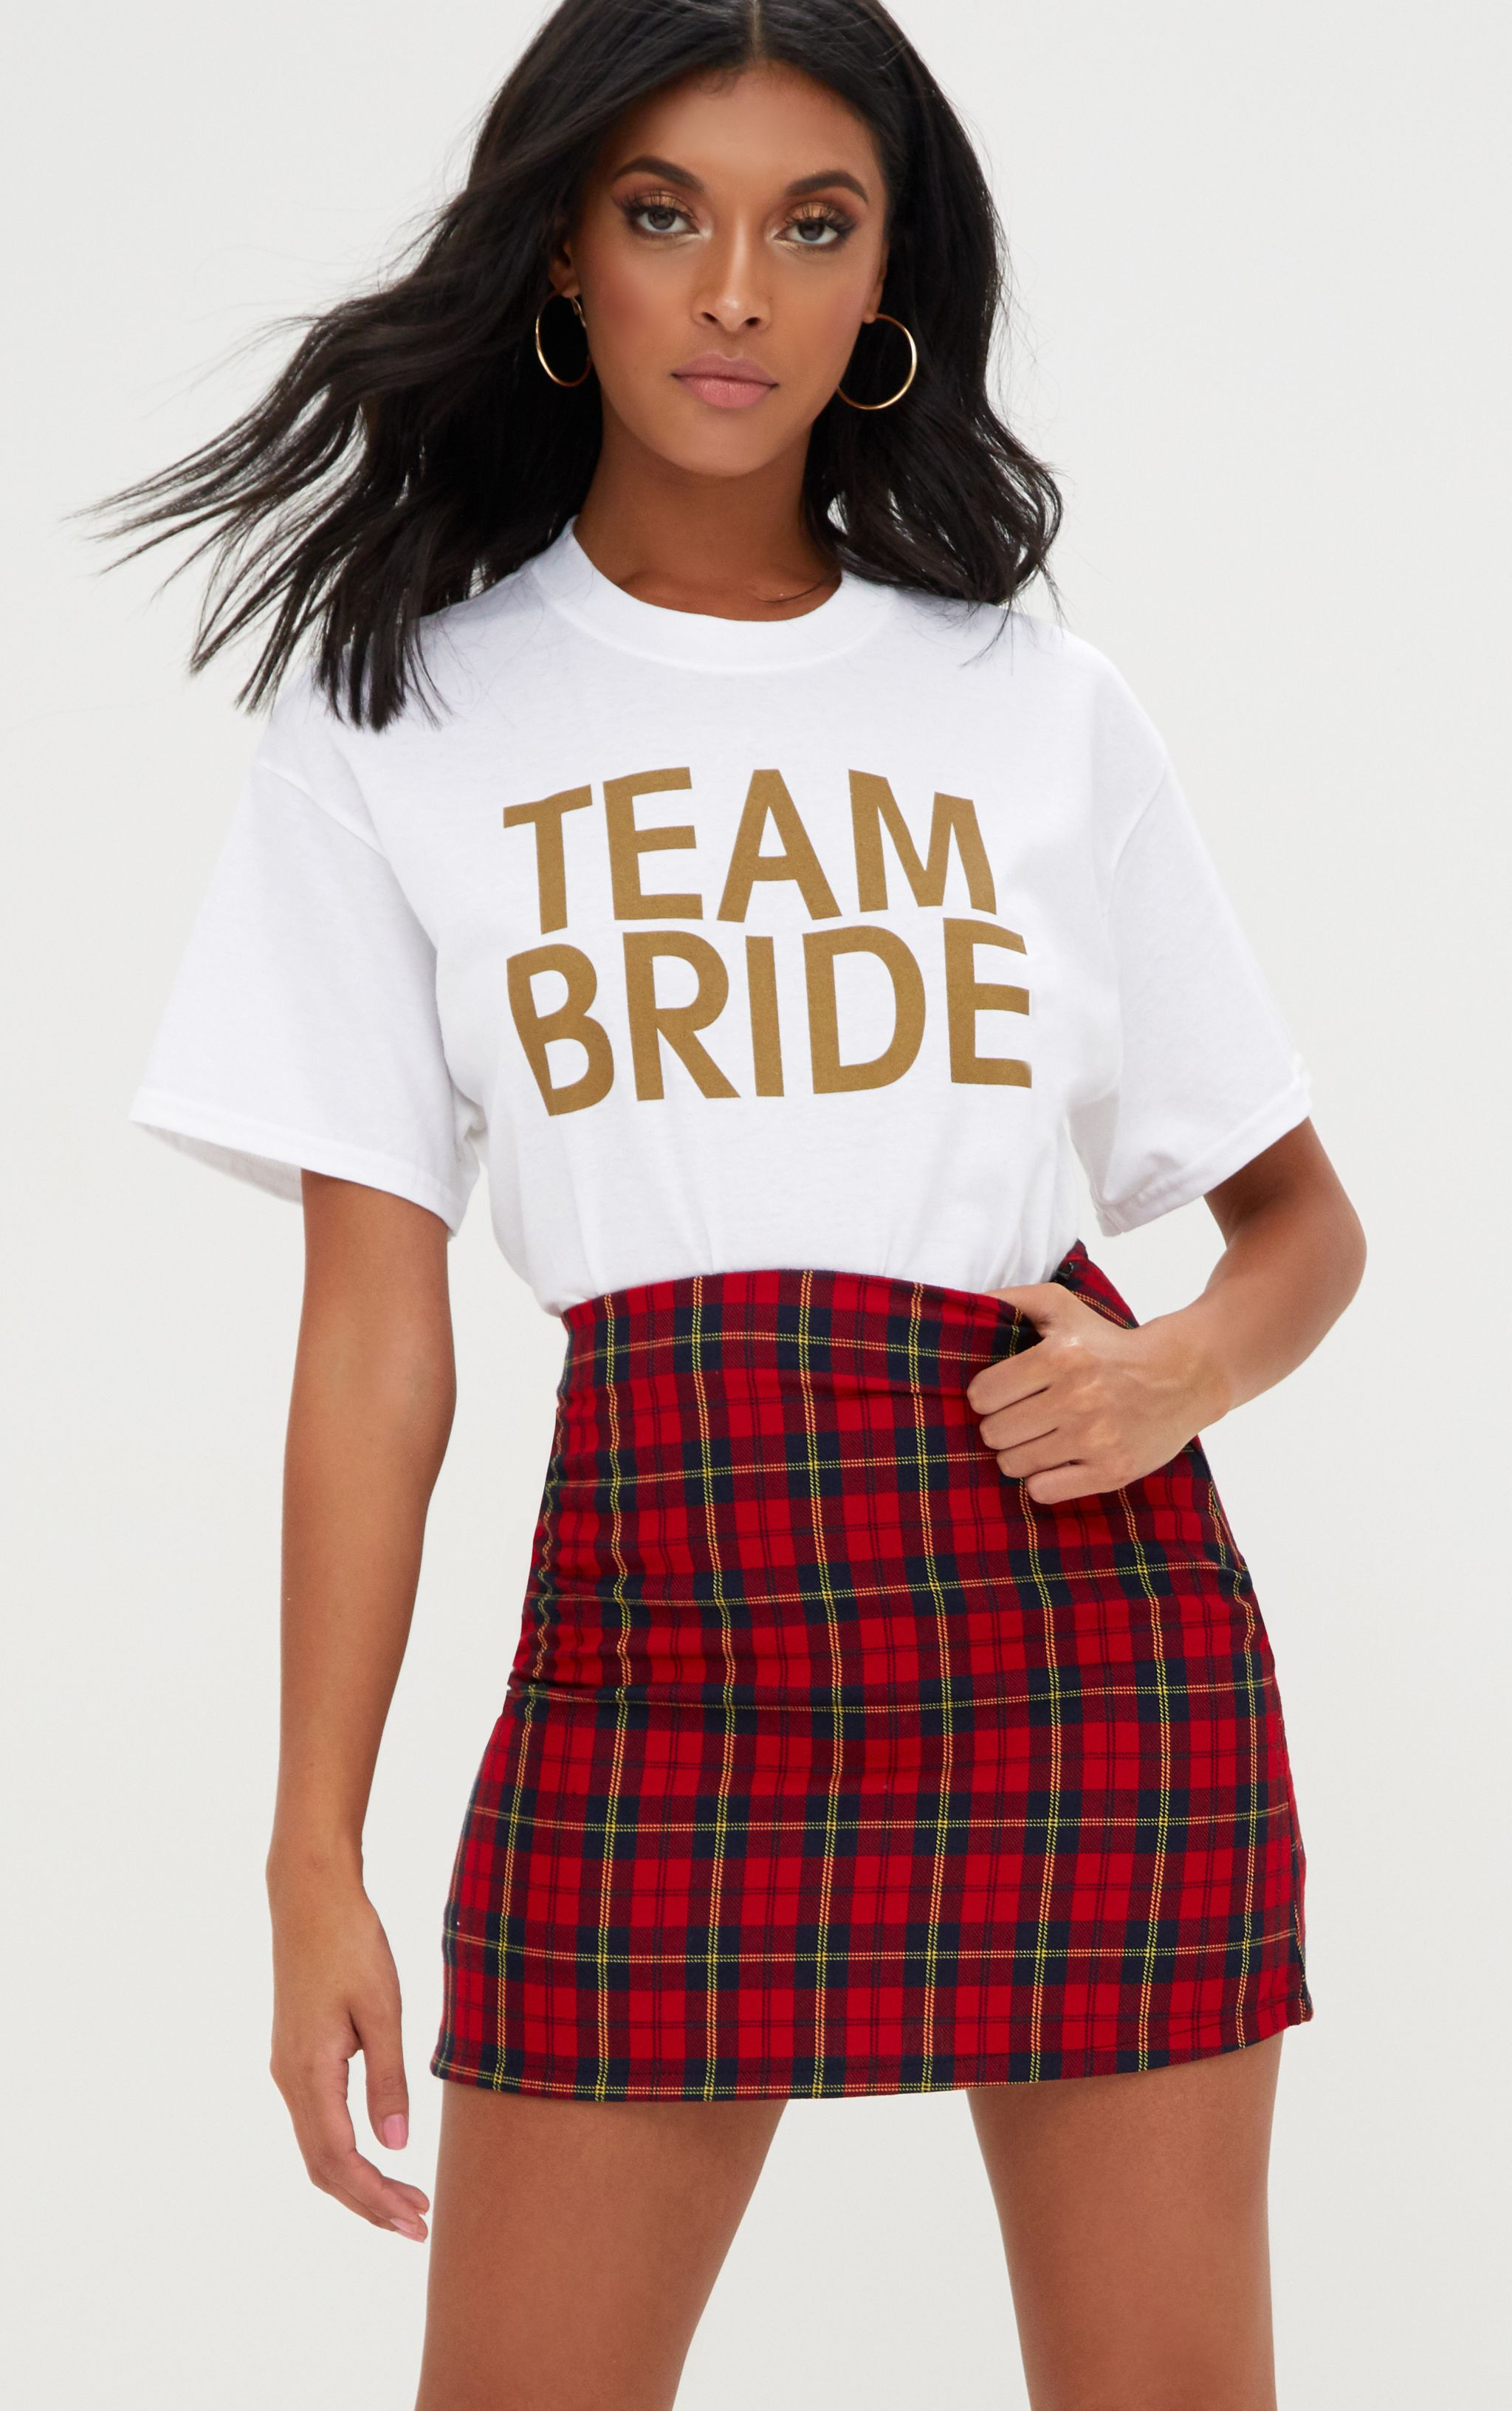 TEAM BRIDE White Slogan T Shirt